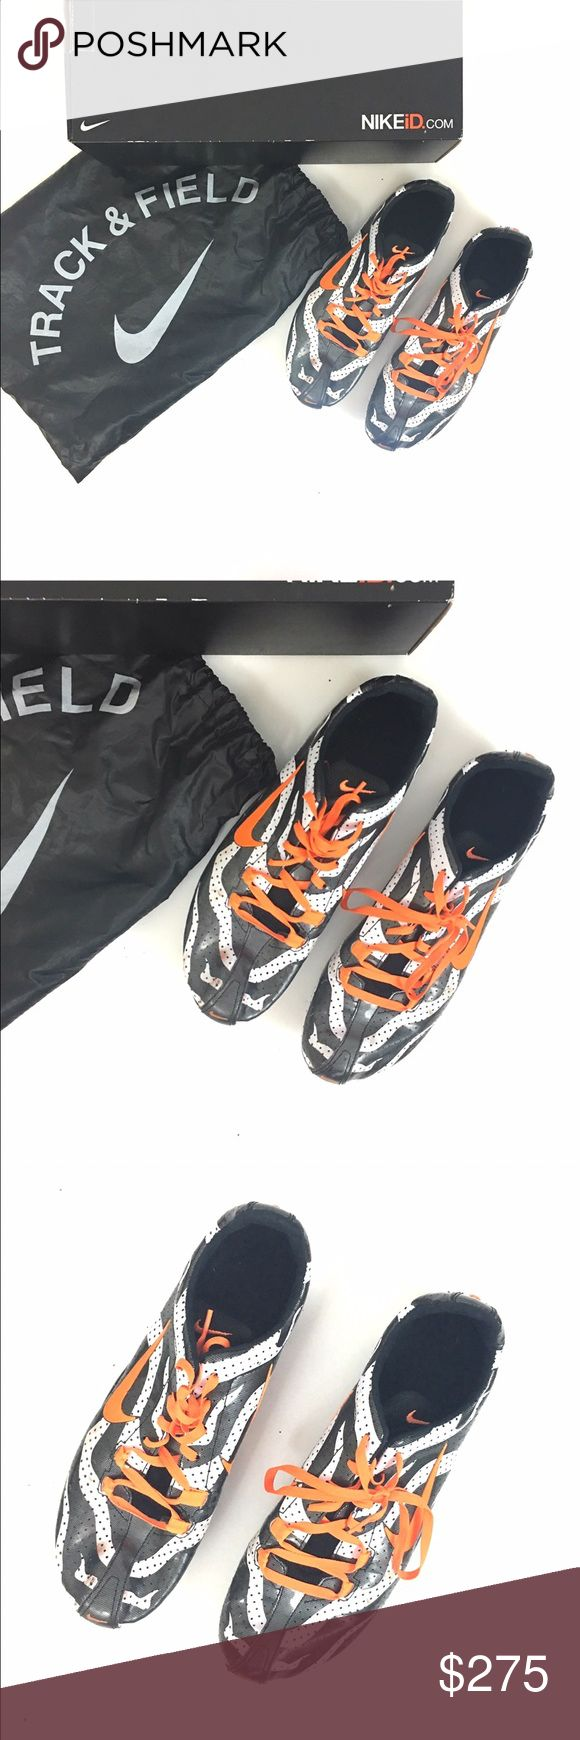 """CUSTOM one of kind NIKE track shoes/spikes These are my personal CUSTOM one of a kind track spikes for when I ran competitive track. They were custom made by Nike.  black and white stripes with bright orange accents. They have scuffs and markings overall and need new spikes. But they come with the bag and the box. These cost me well over 300. They also have an inscription """"my time to fly"""" on the back heels it's possible that this could be removed if you desired. Women's 11. Men's 9 DO NOT…"""